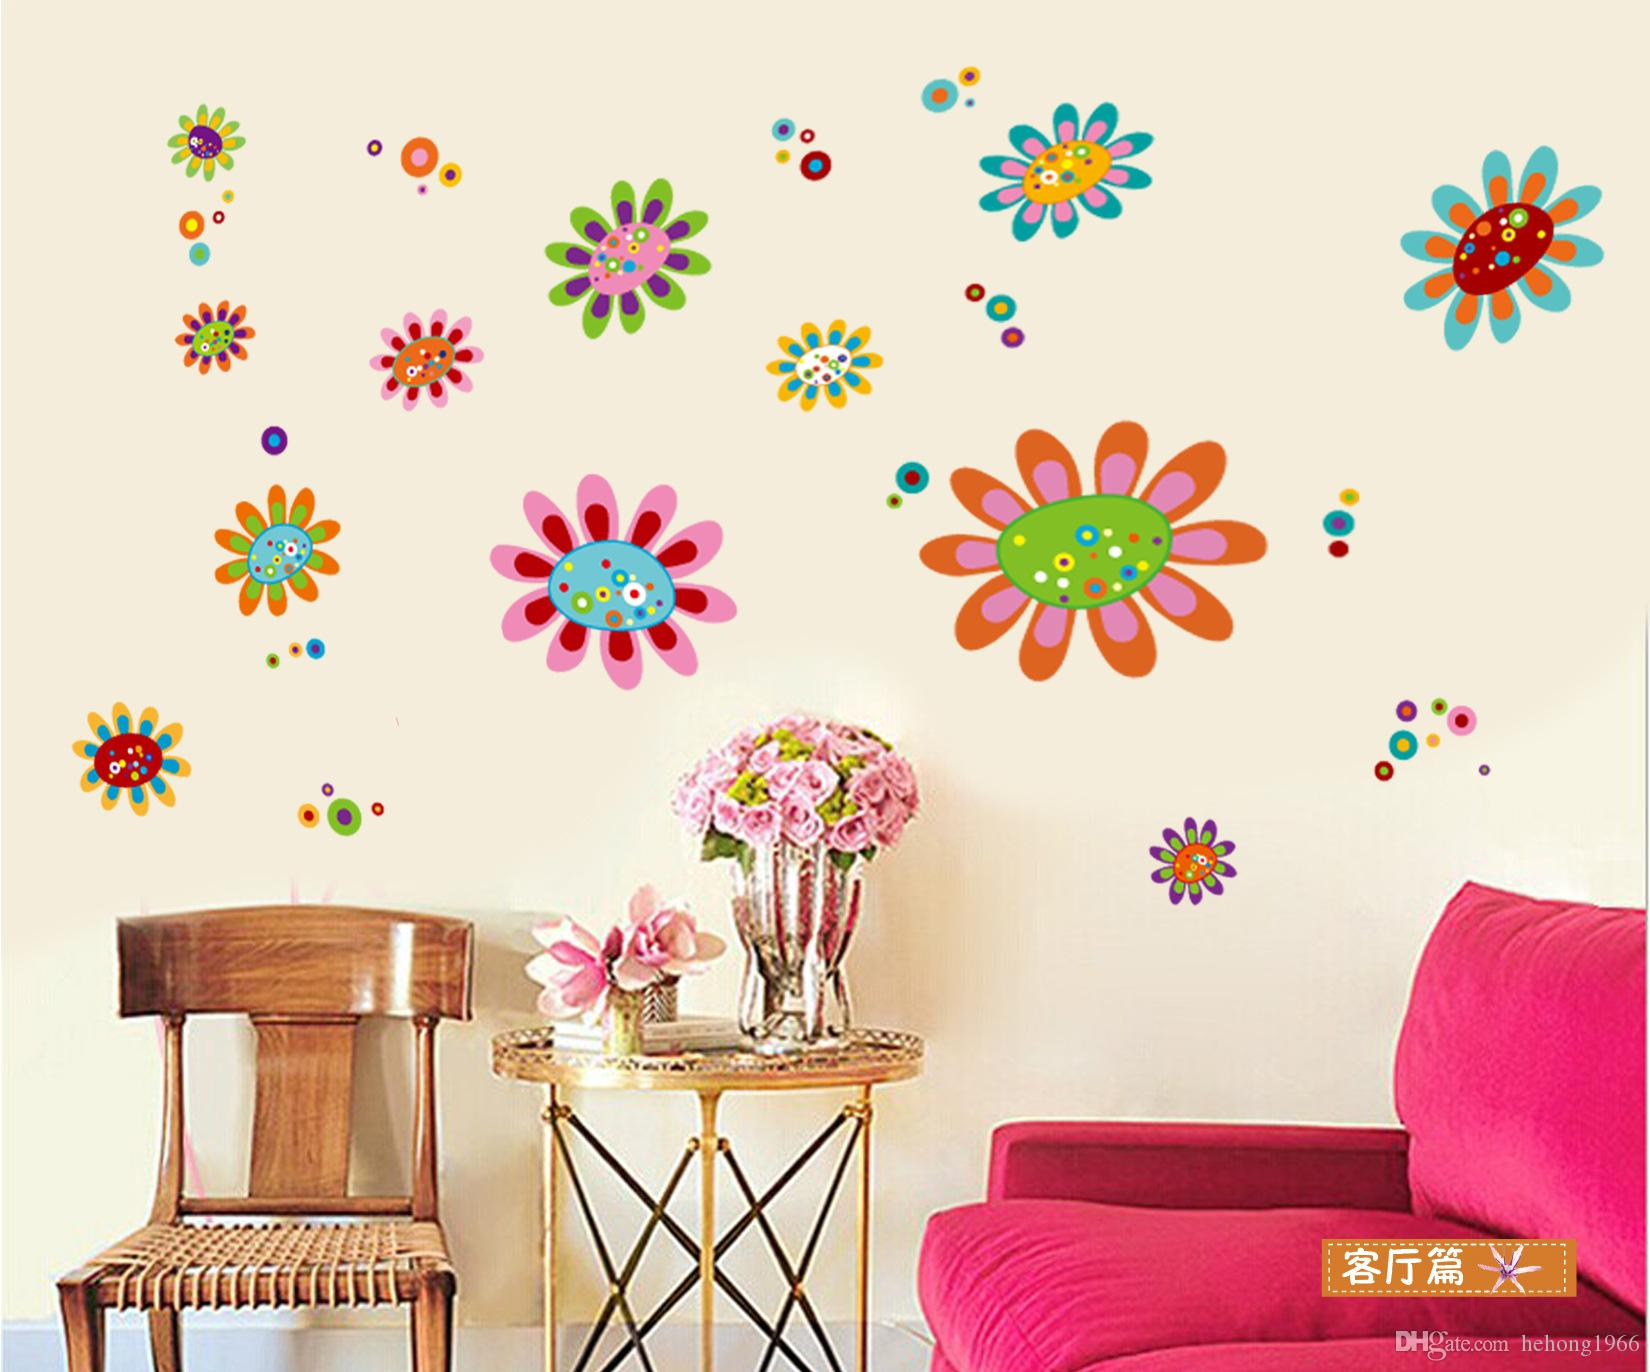 Cartoon flower scenery wallpaper wall stickers mural art pvc vinyl decal removable home decoration best hot sell wall decal 2 8jm j r kids removable wall